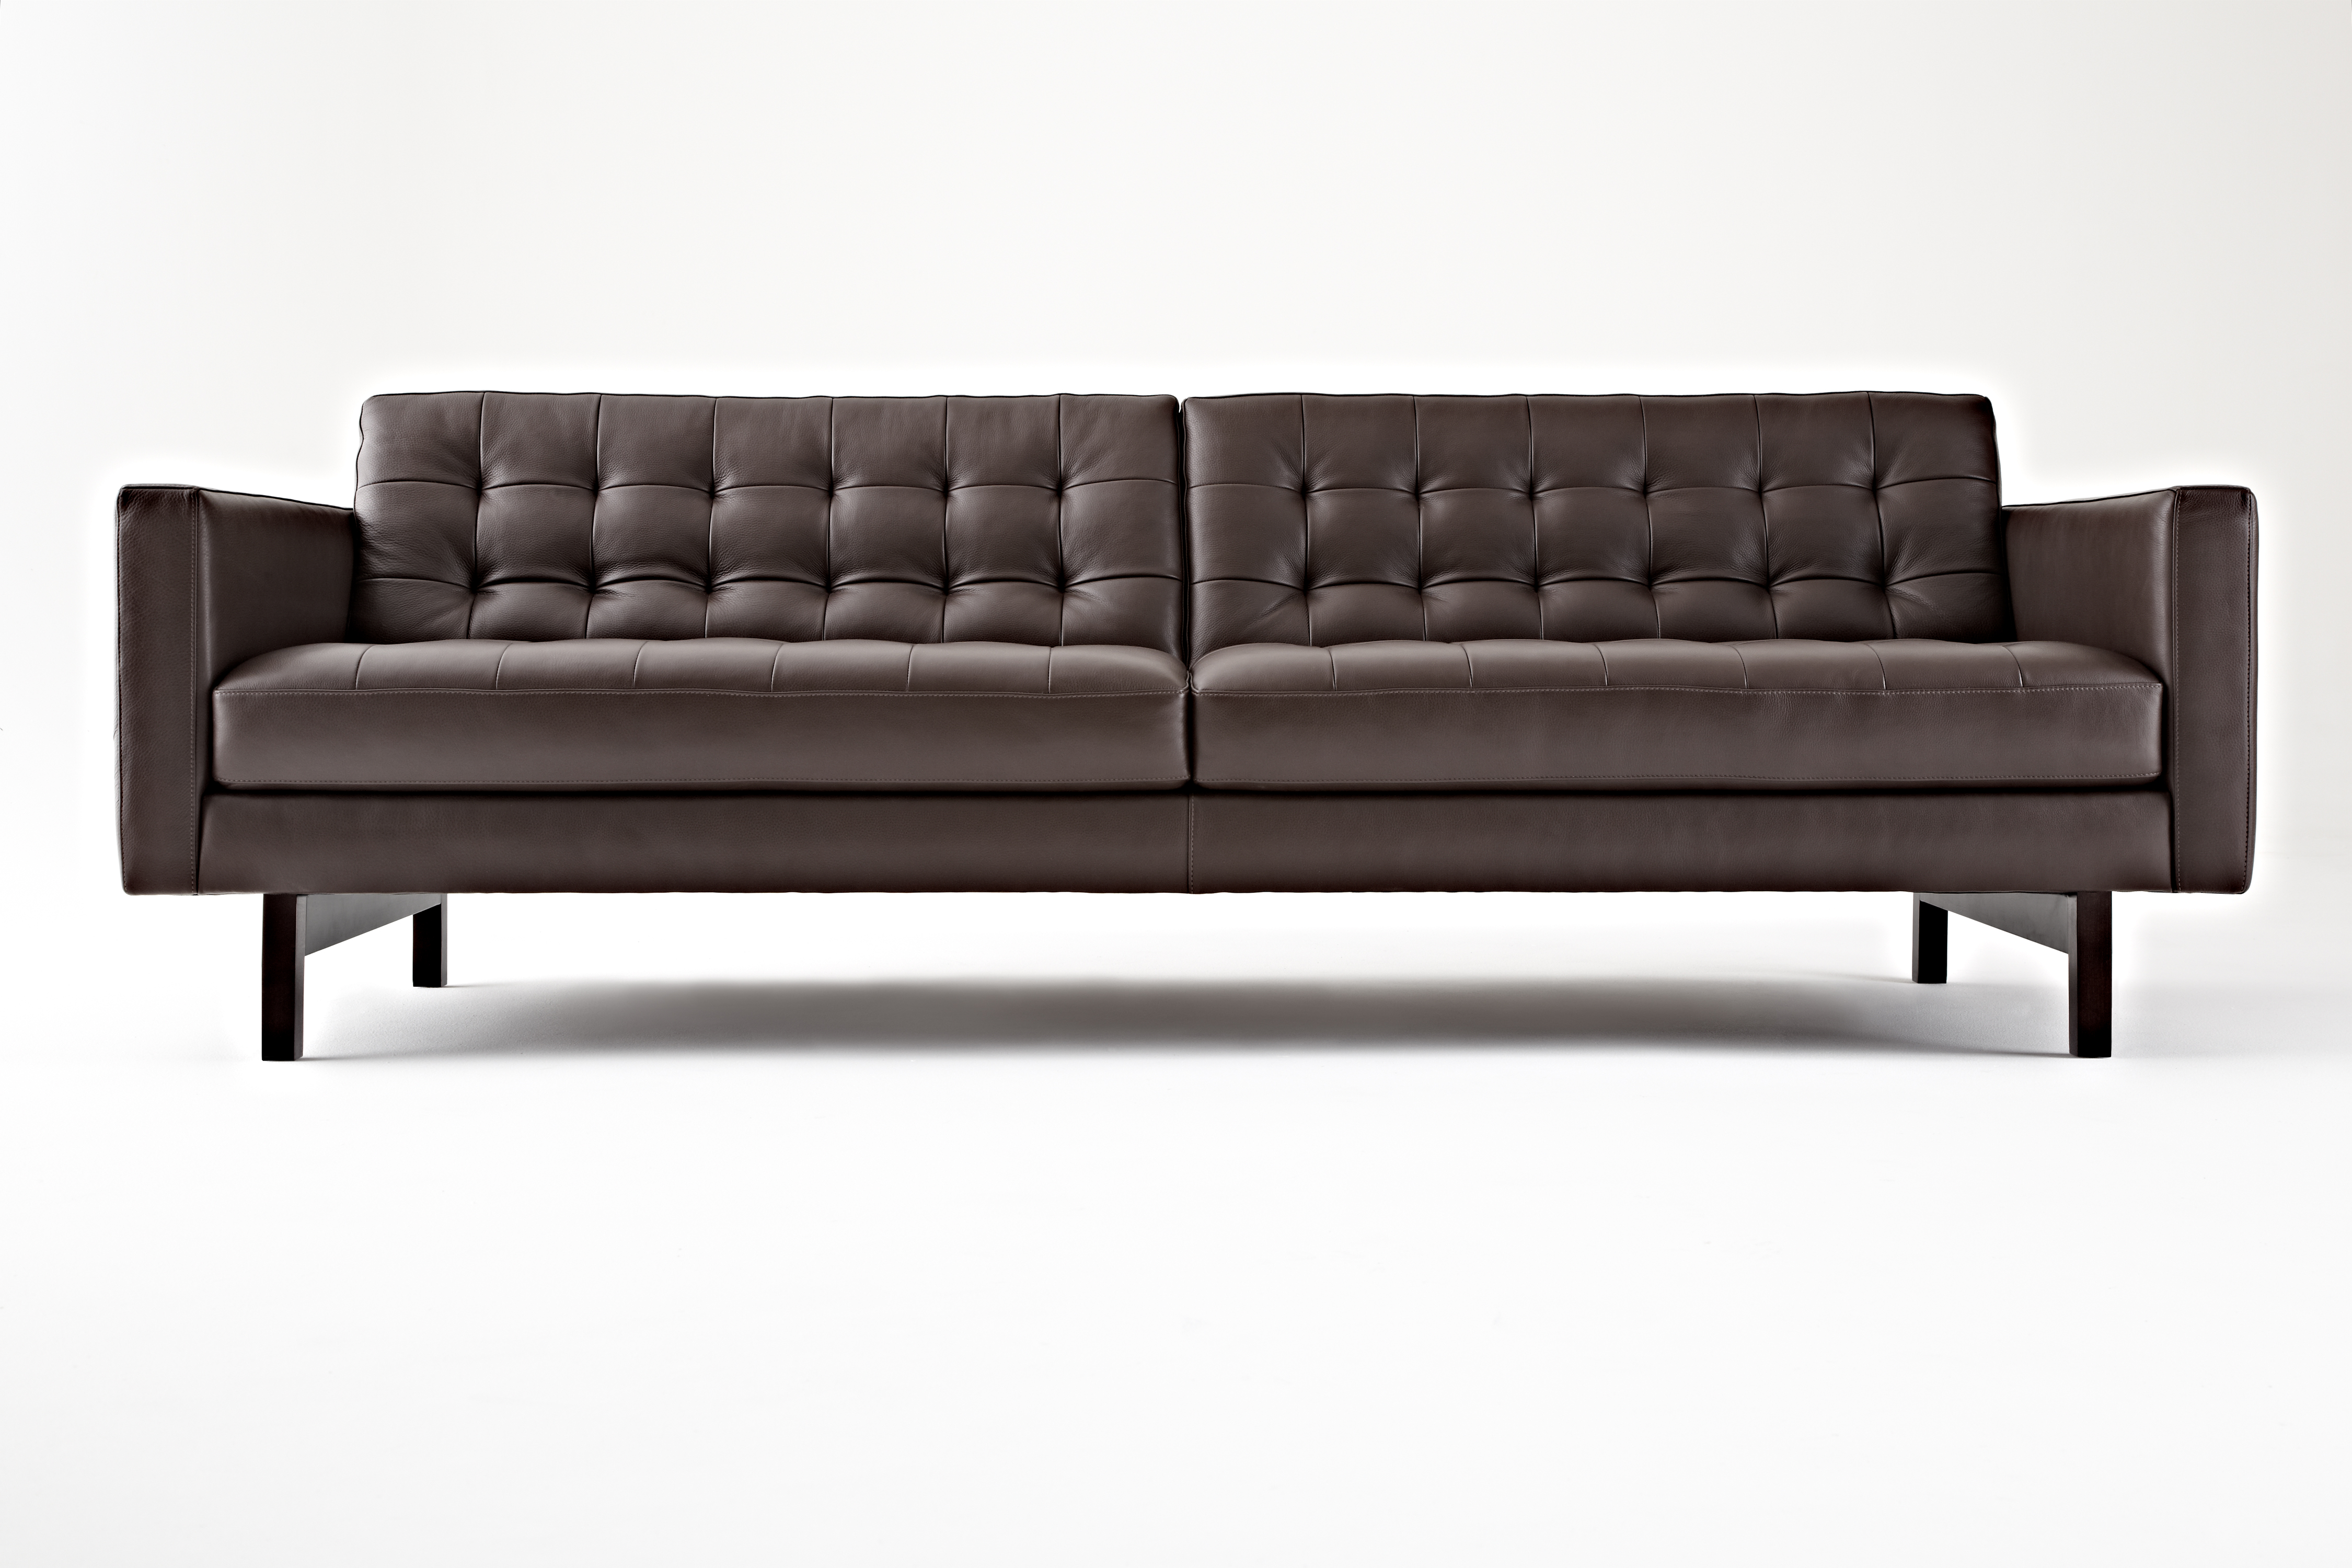 fantastic craigslist leather sofa image-Best Craigslist Leather sofa Collection